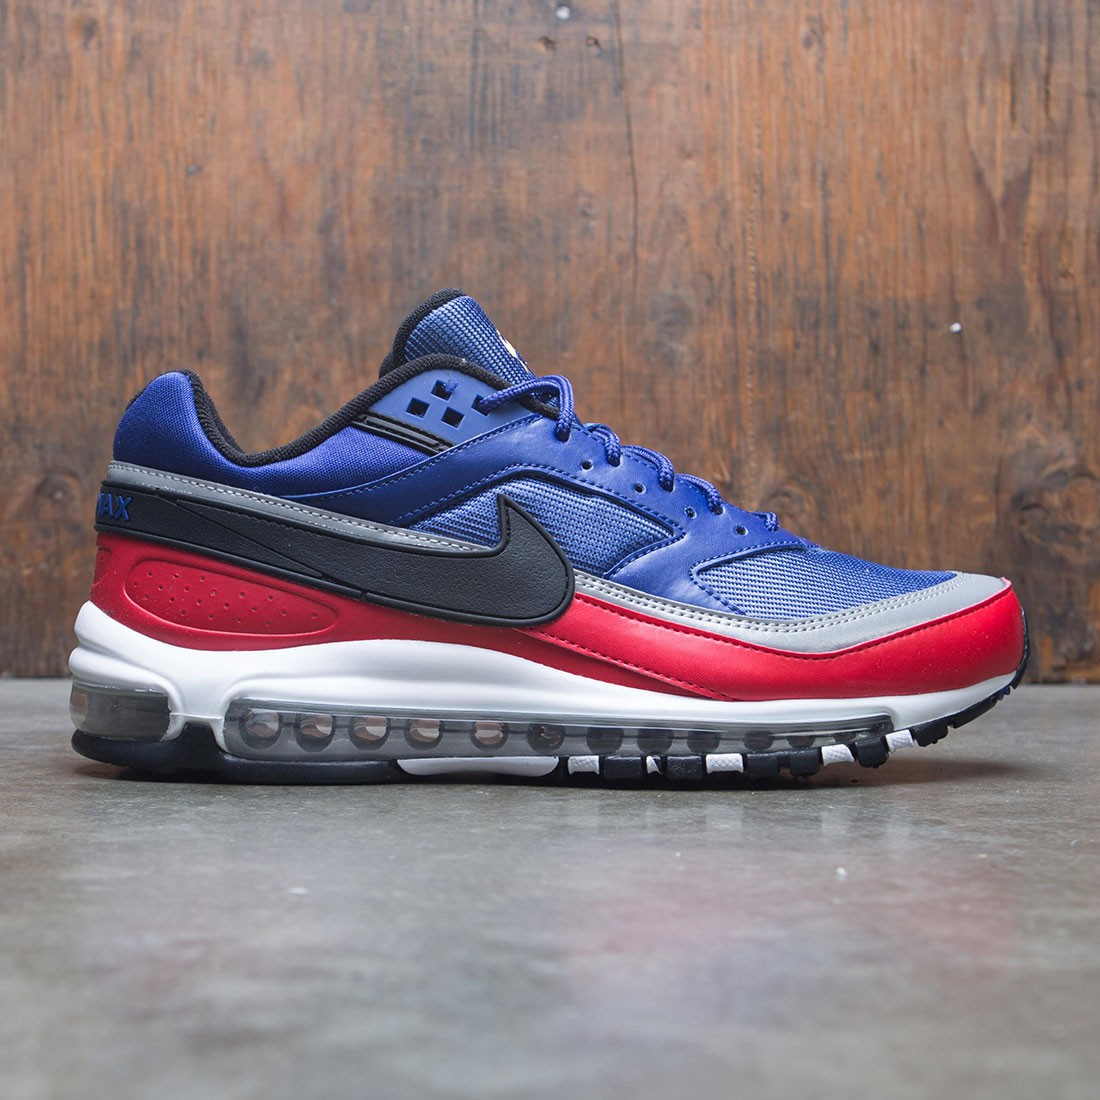 sale retailer 0e121 a8ef0 Nike Men Air Max 97 / Bw (deep royal blue / black-university red)